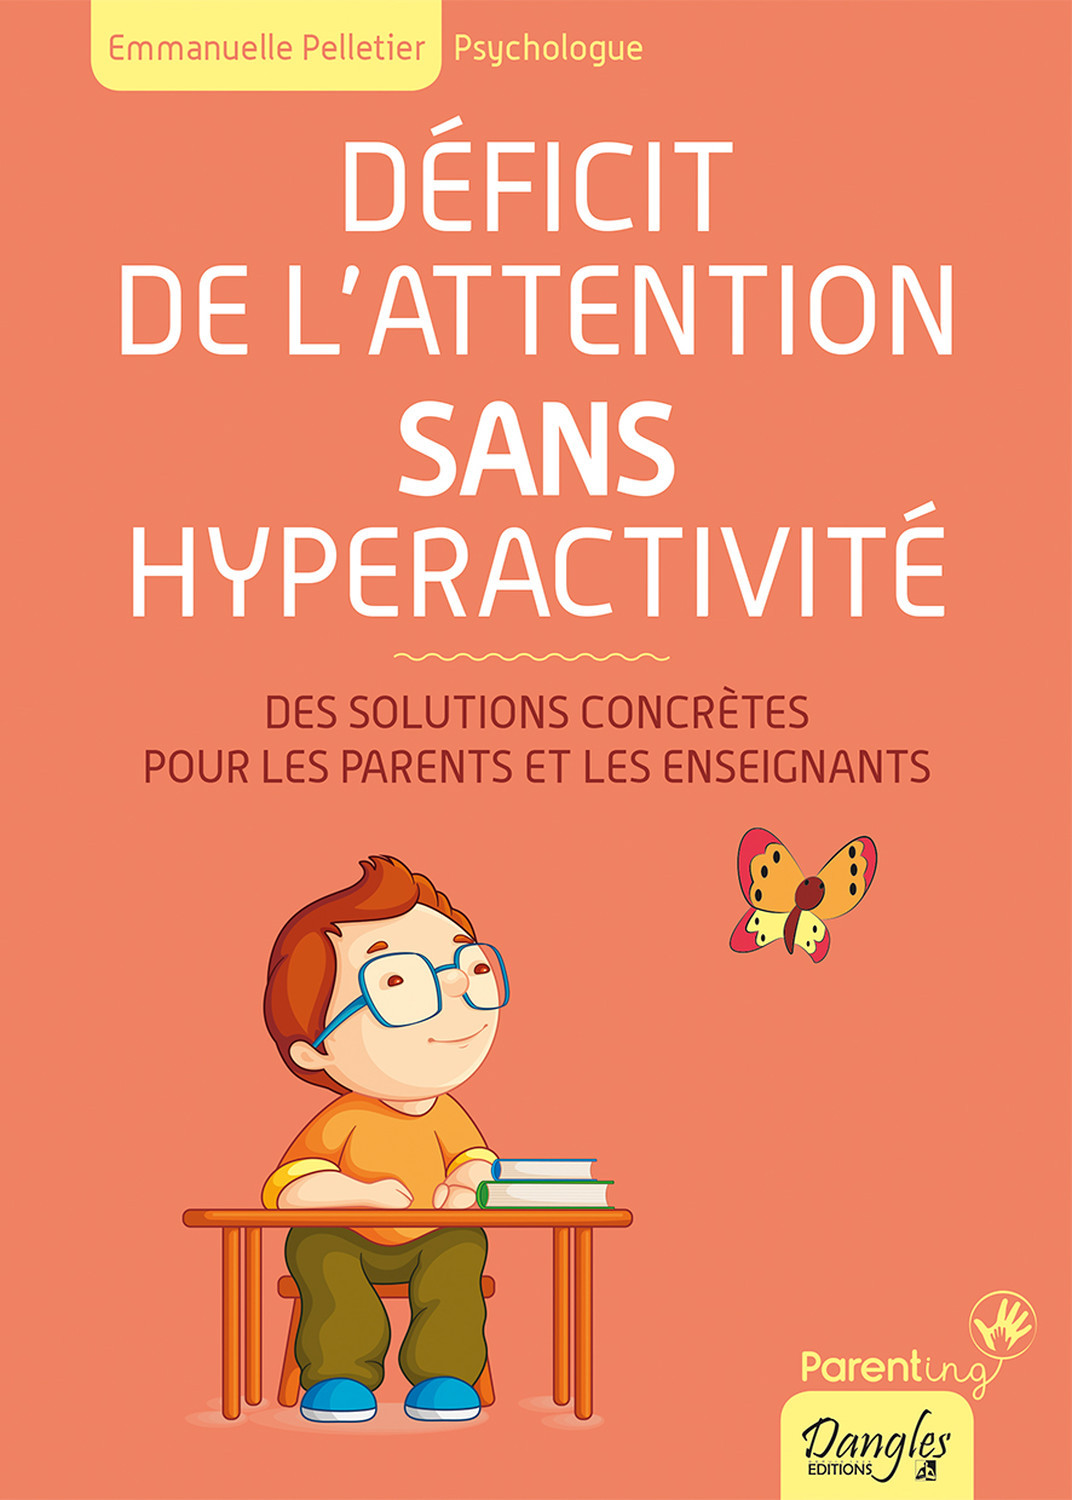 DEFICIT DE L'ATTENTION SANS HYPERACTIVITE - DES SOLUTIONS CONCRETES POUR LES PARENTS ET LES ENSEIGNA